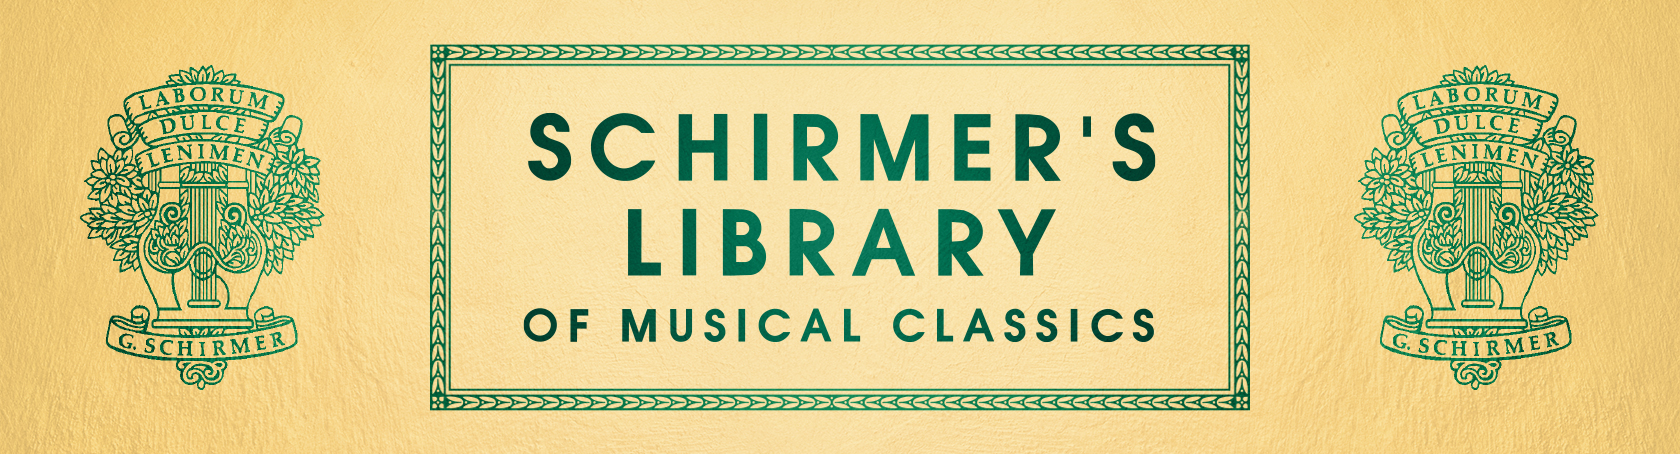 Schirmer's Library of Musical Classics